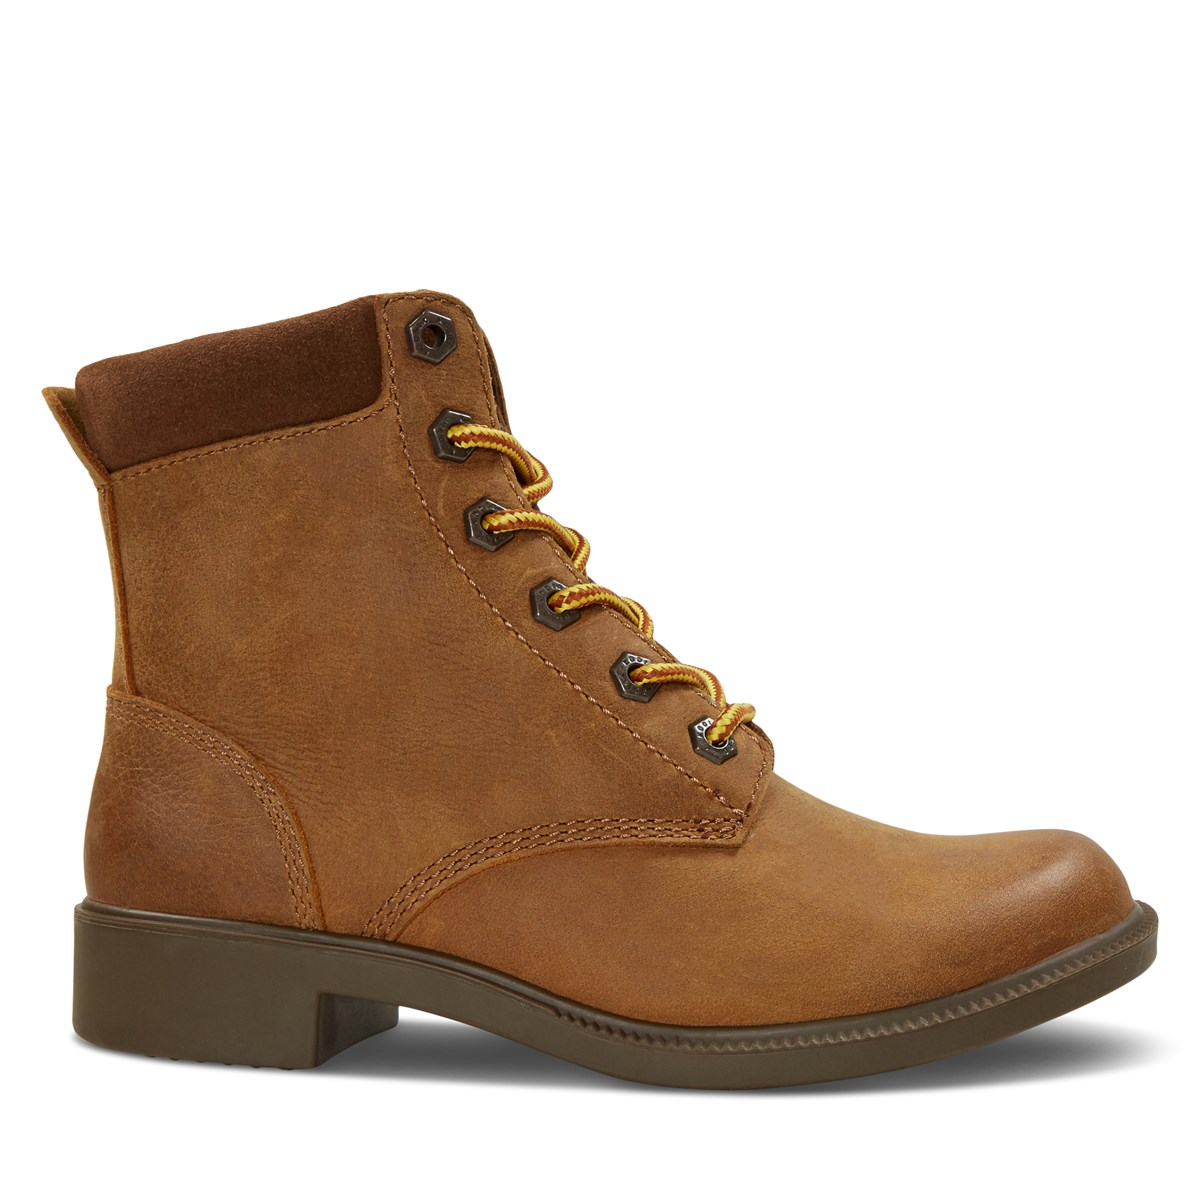 Women's Jalon Boots in Camel